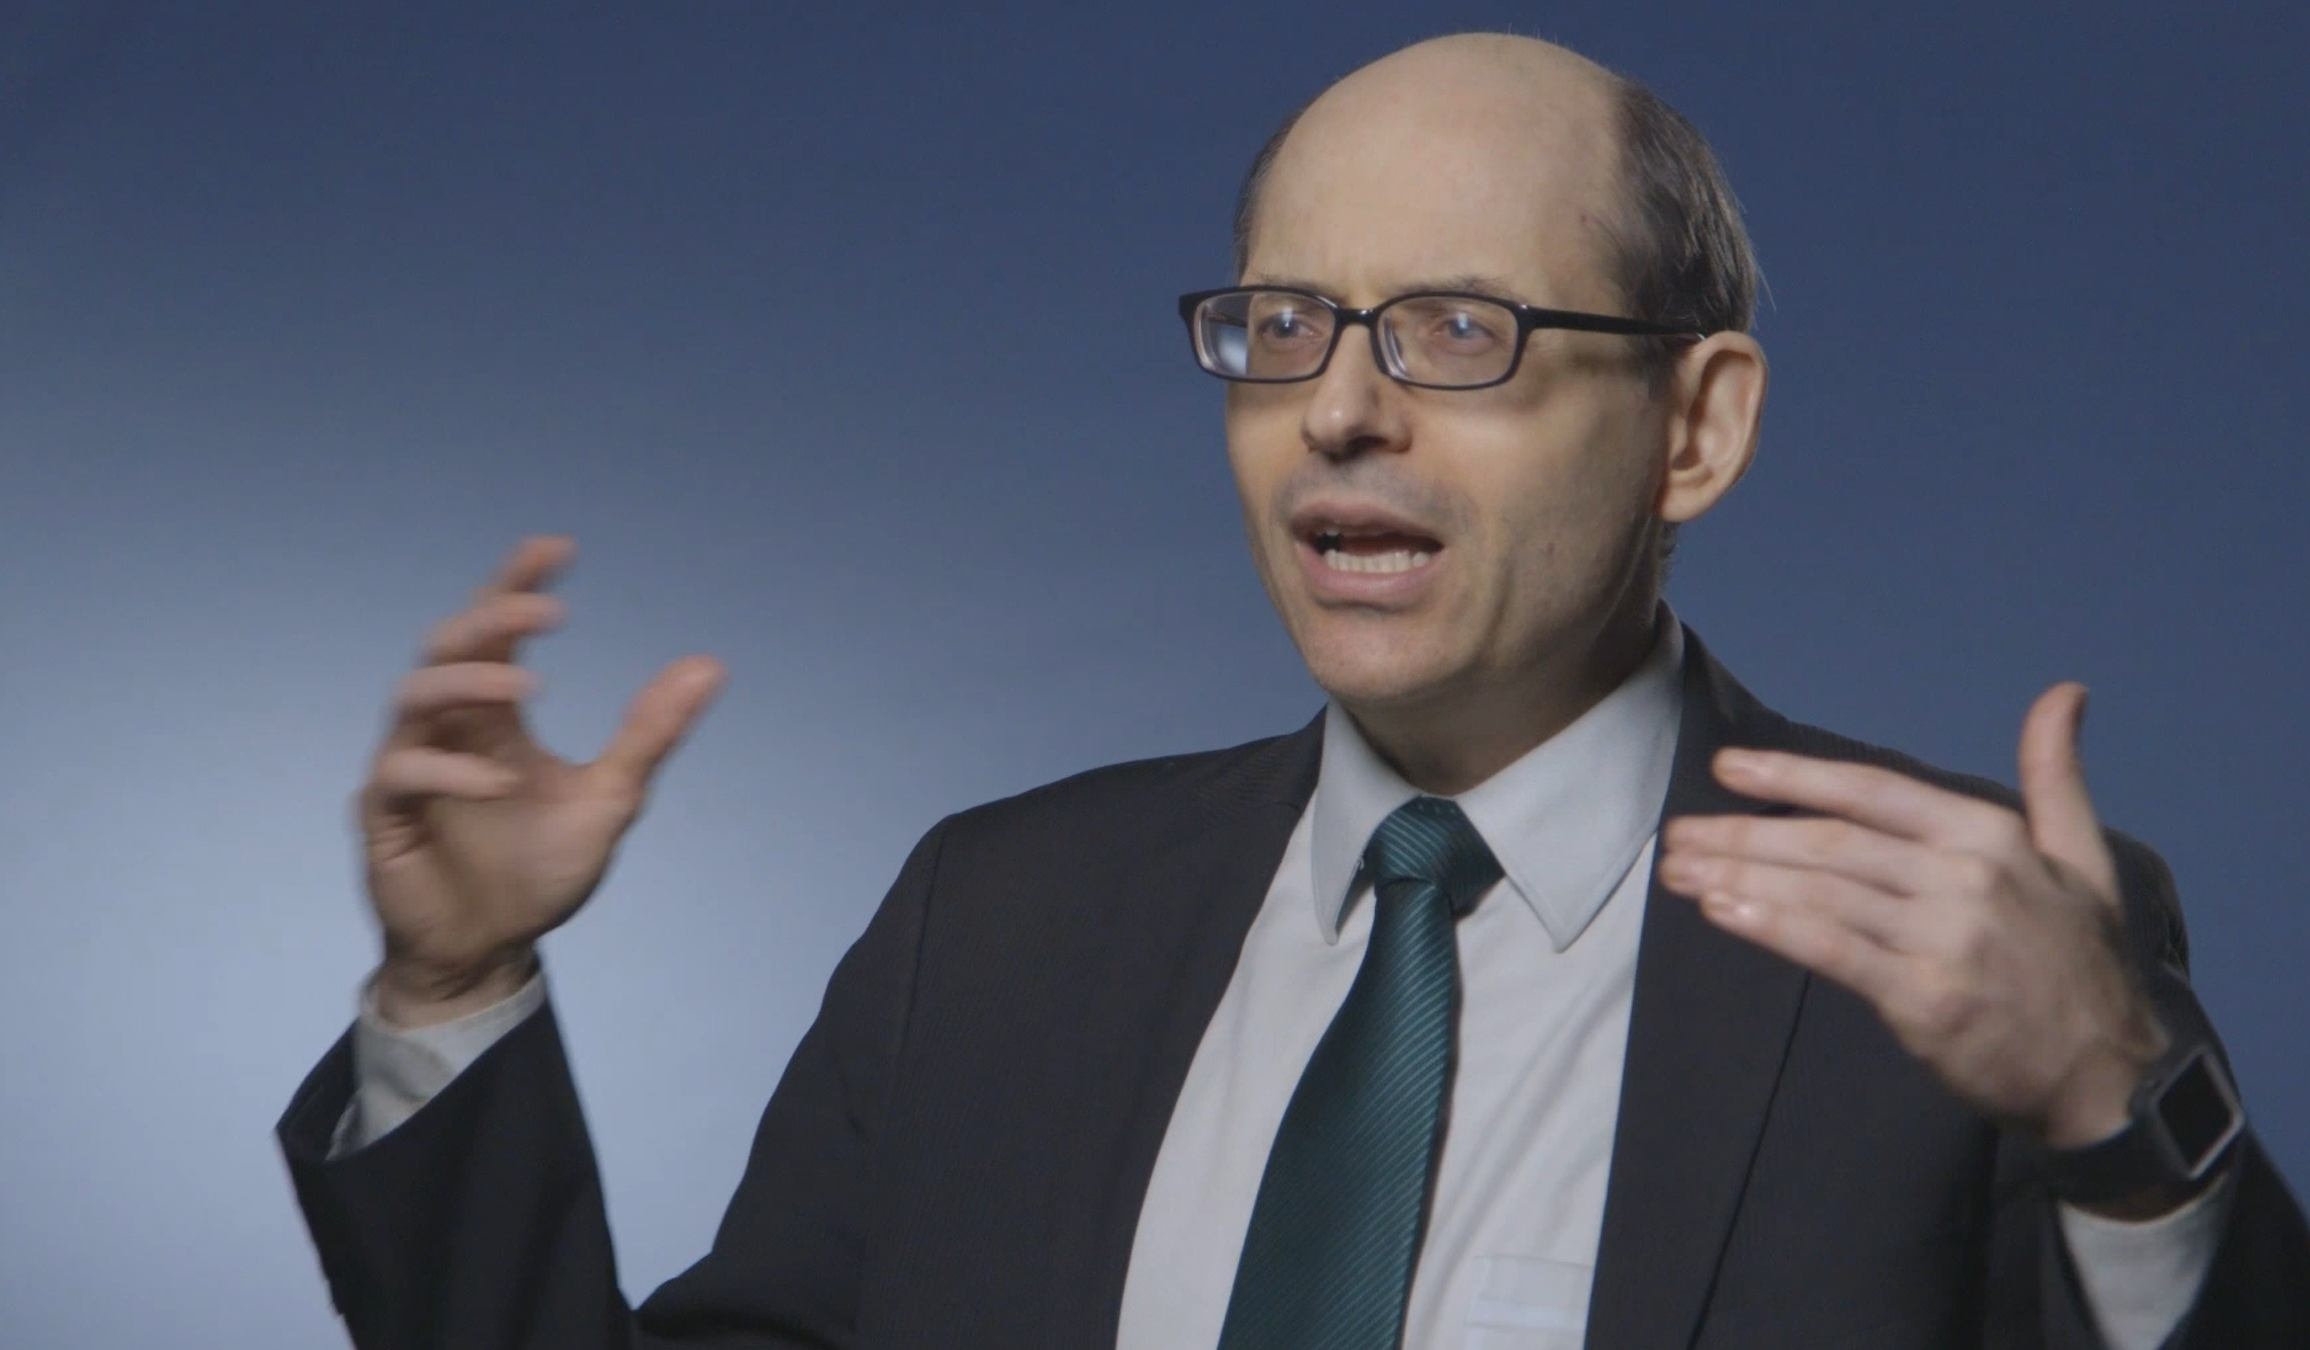 Plant-based doctor Dr. Michael Greger